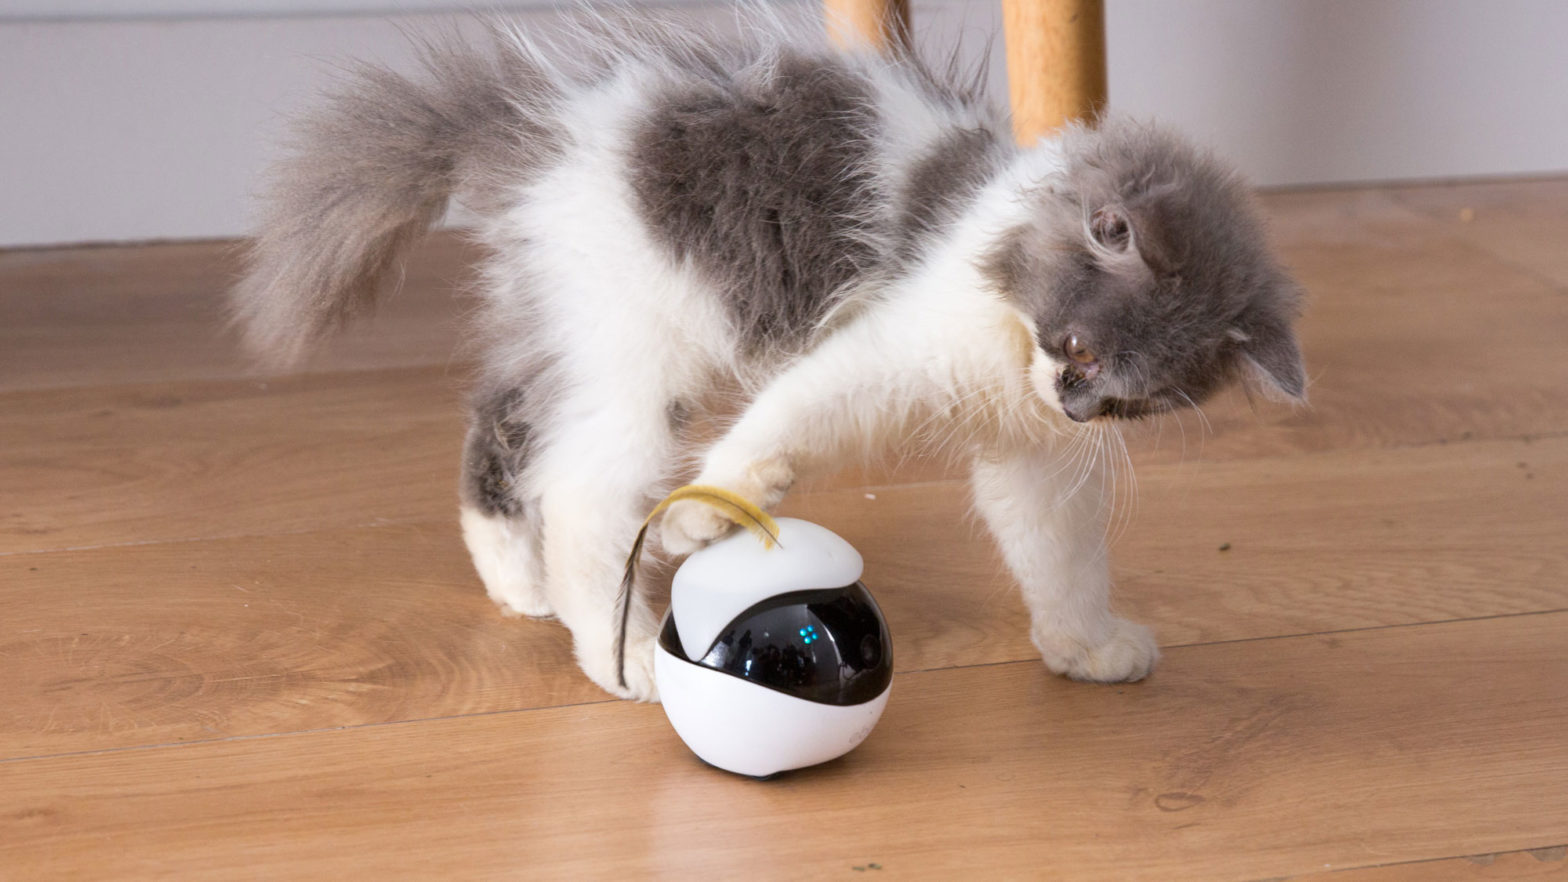 Ebo Smart Robot Companion For Cats